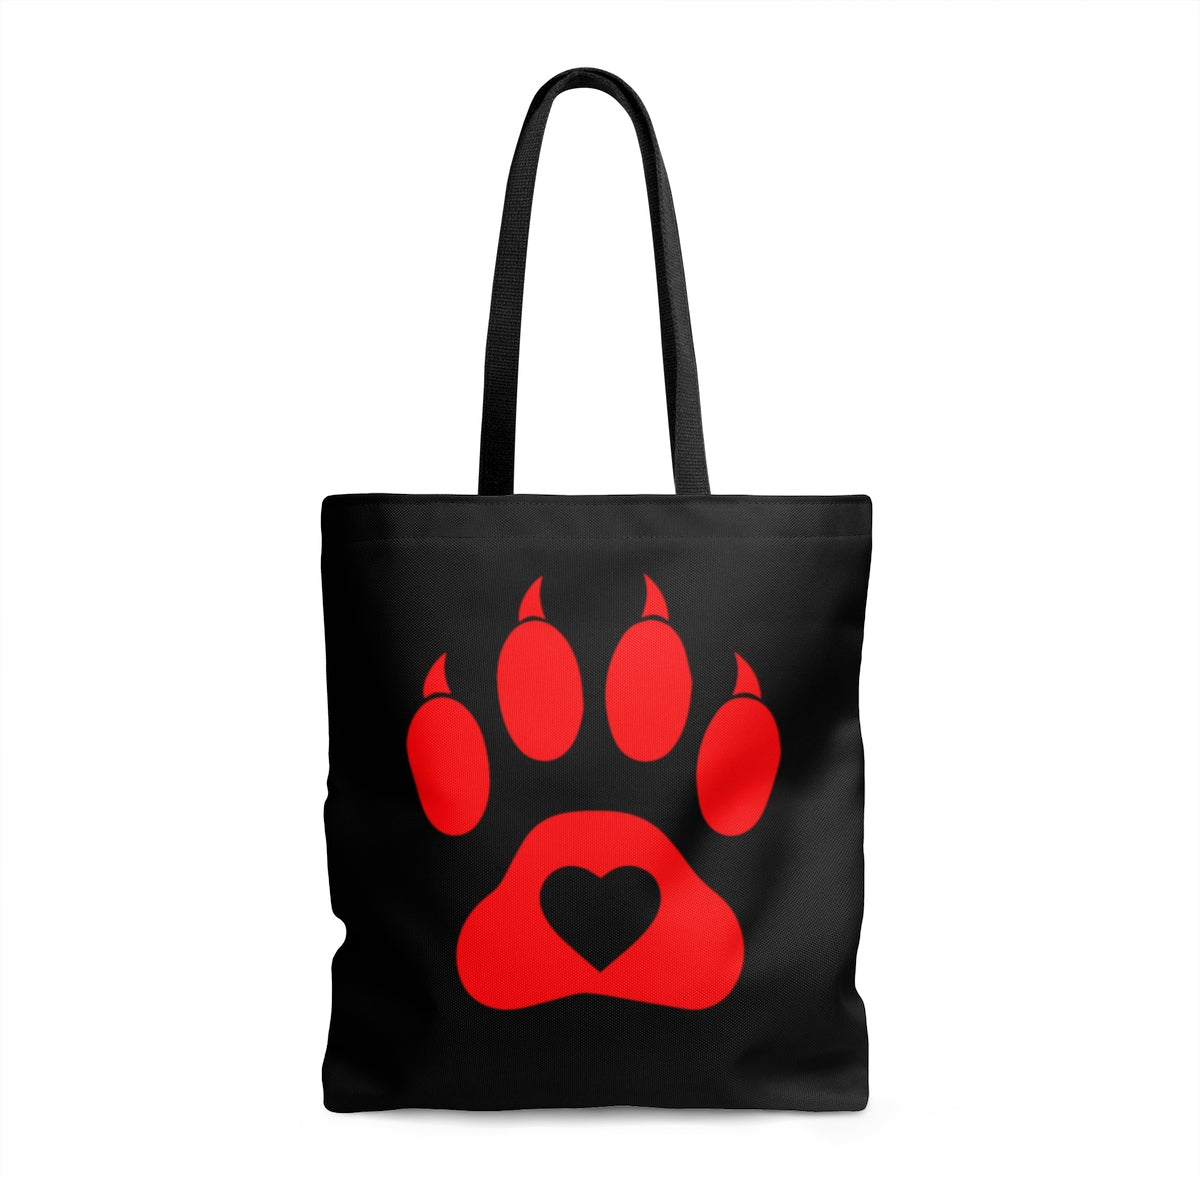 Bag Heart Paw Tote